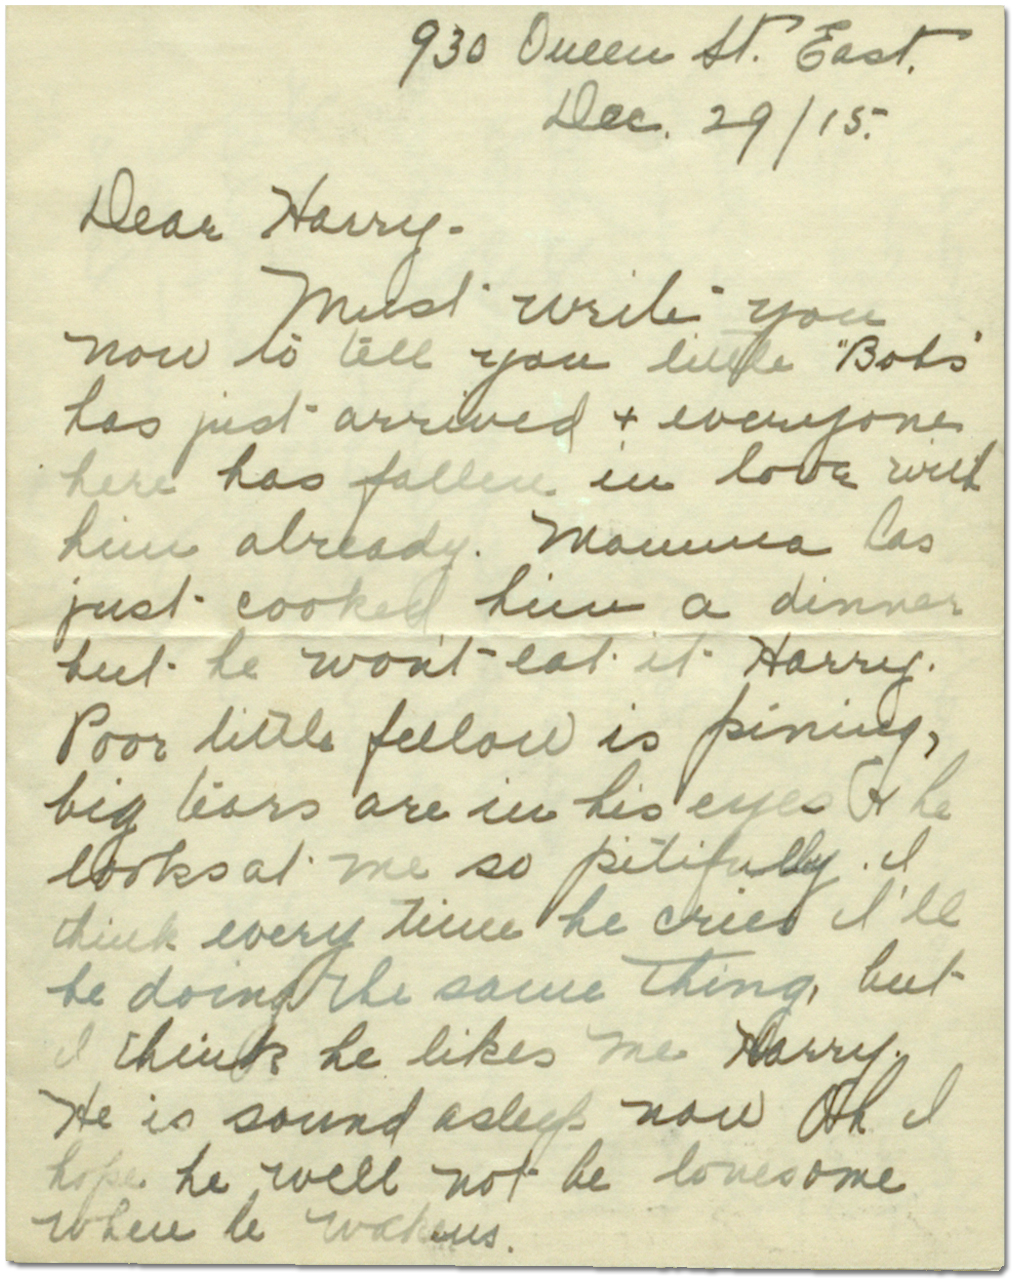 Letter from Sadie Arbuckle to Harry Mason, December 29, 1915